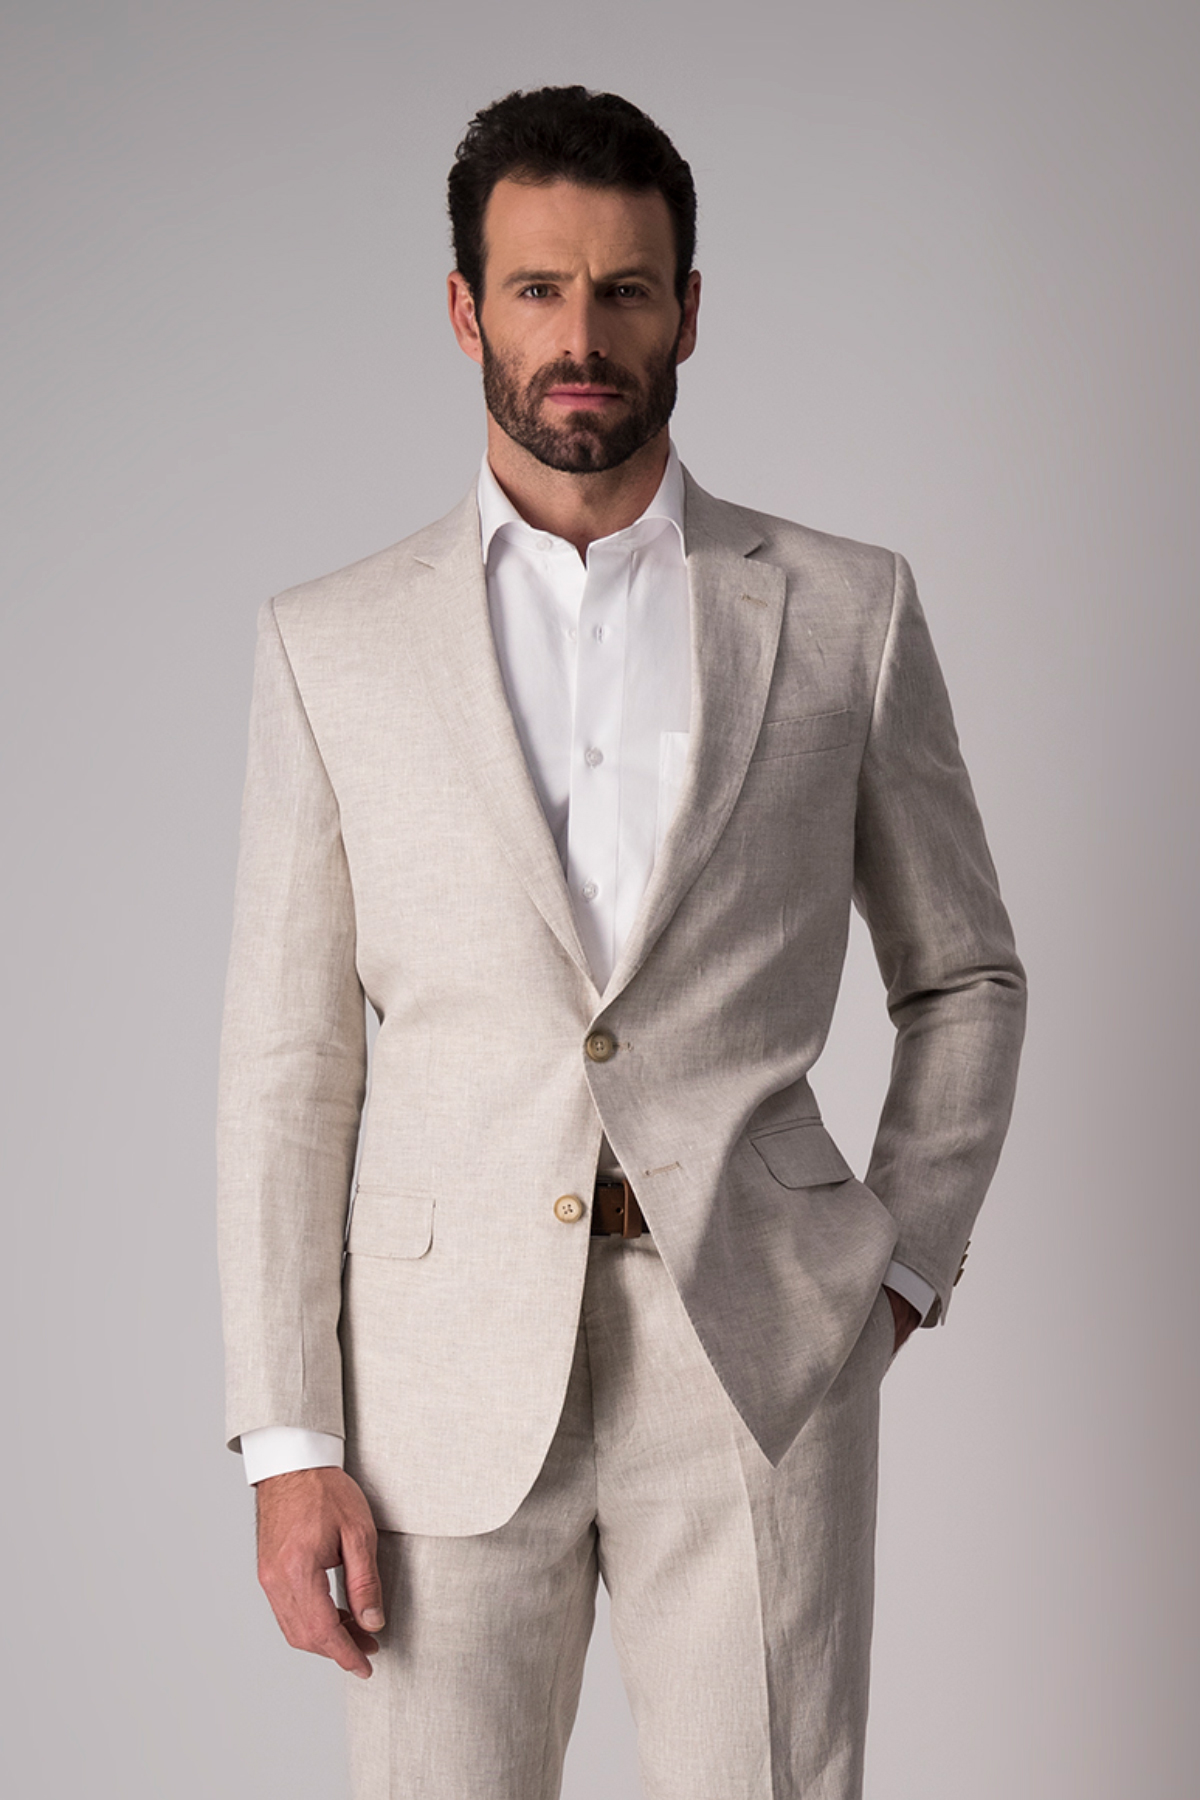 Traje Robert´s,  Regular fit, 100% lino, natural.